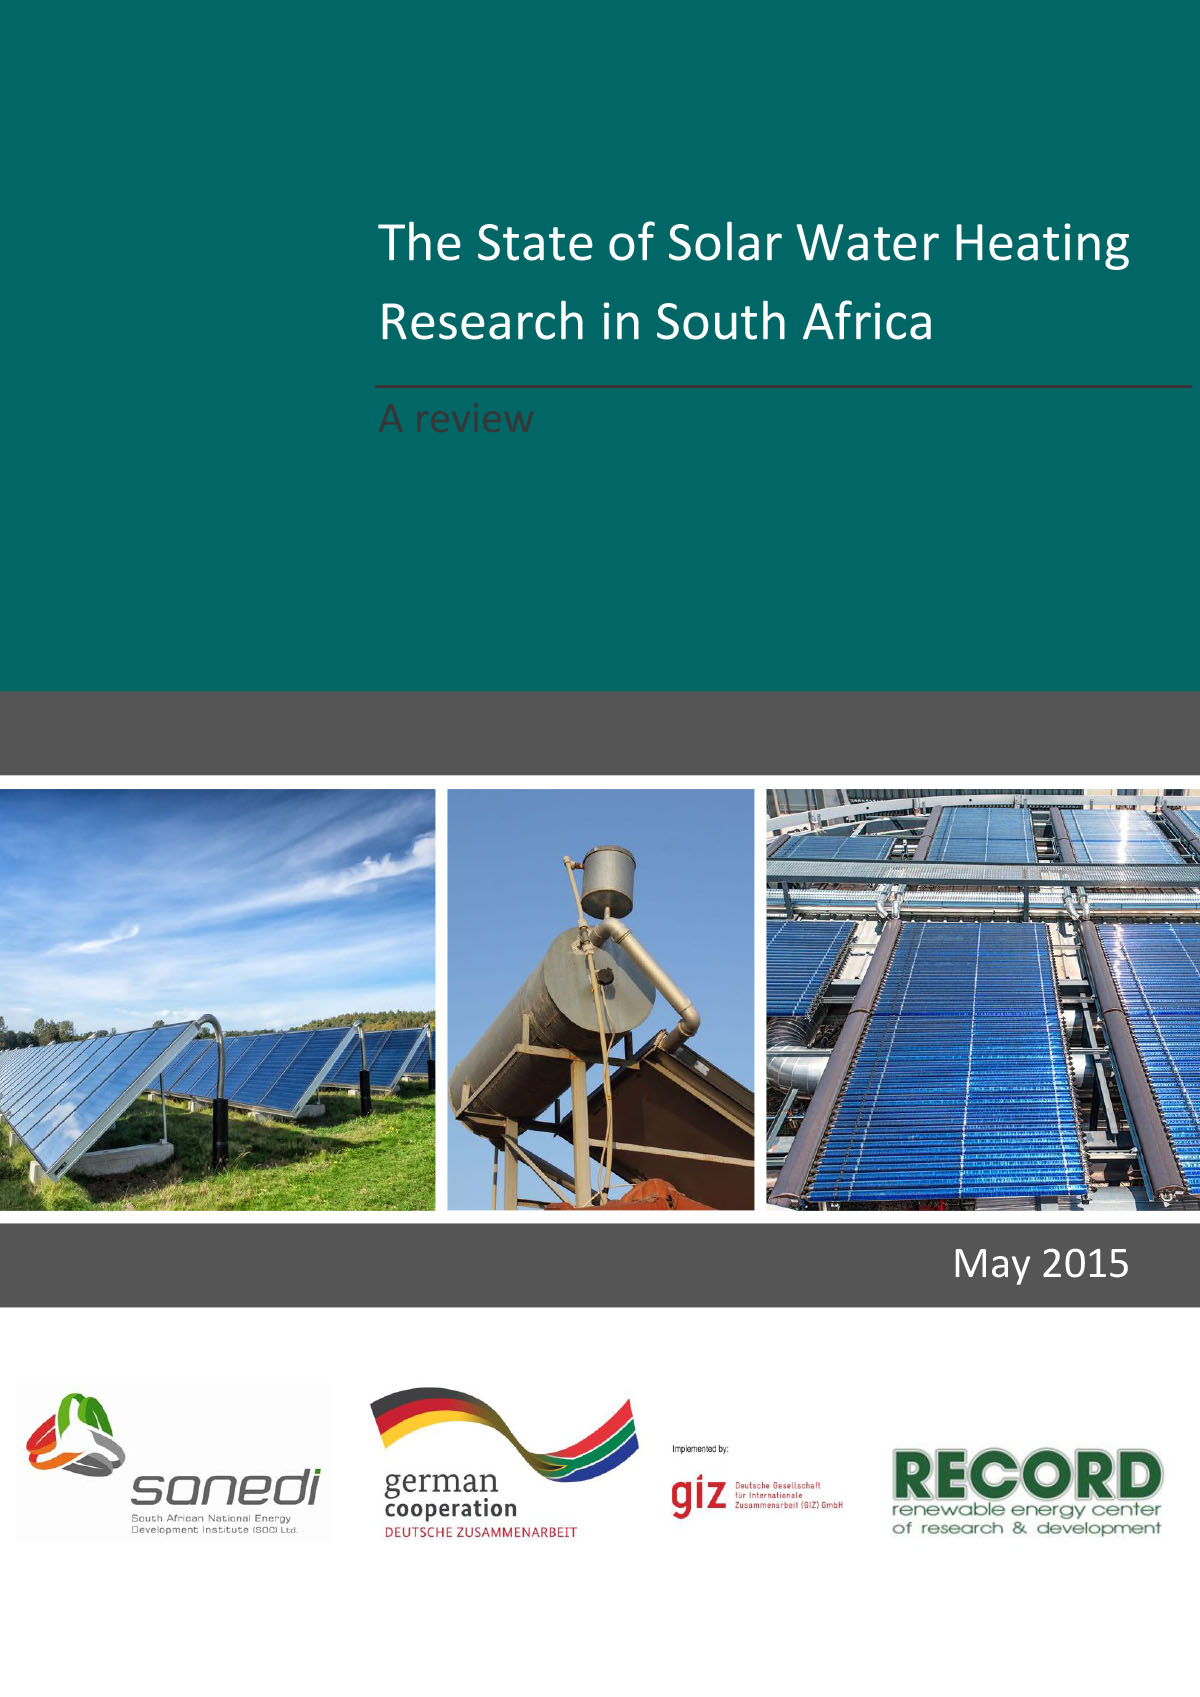 The State of Solar Water Heater Research in RSA: A Review